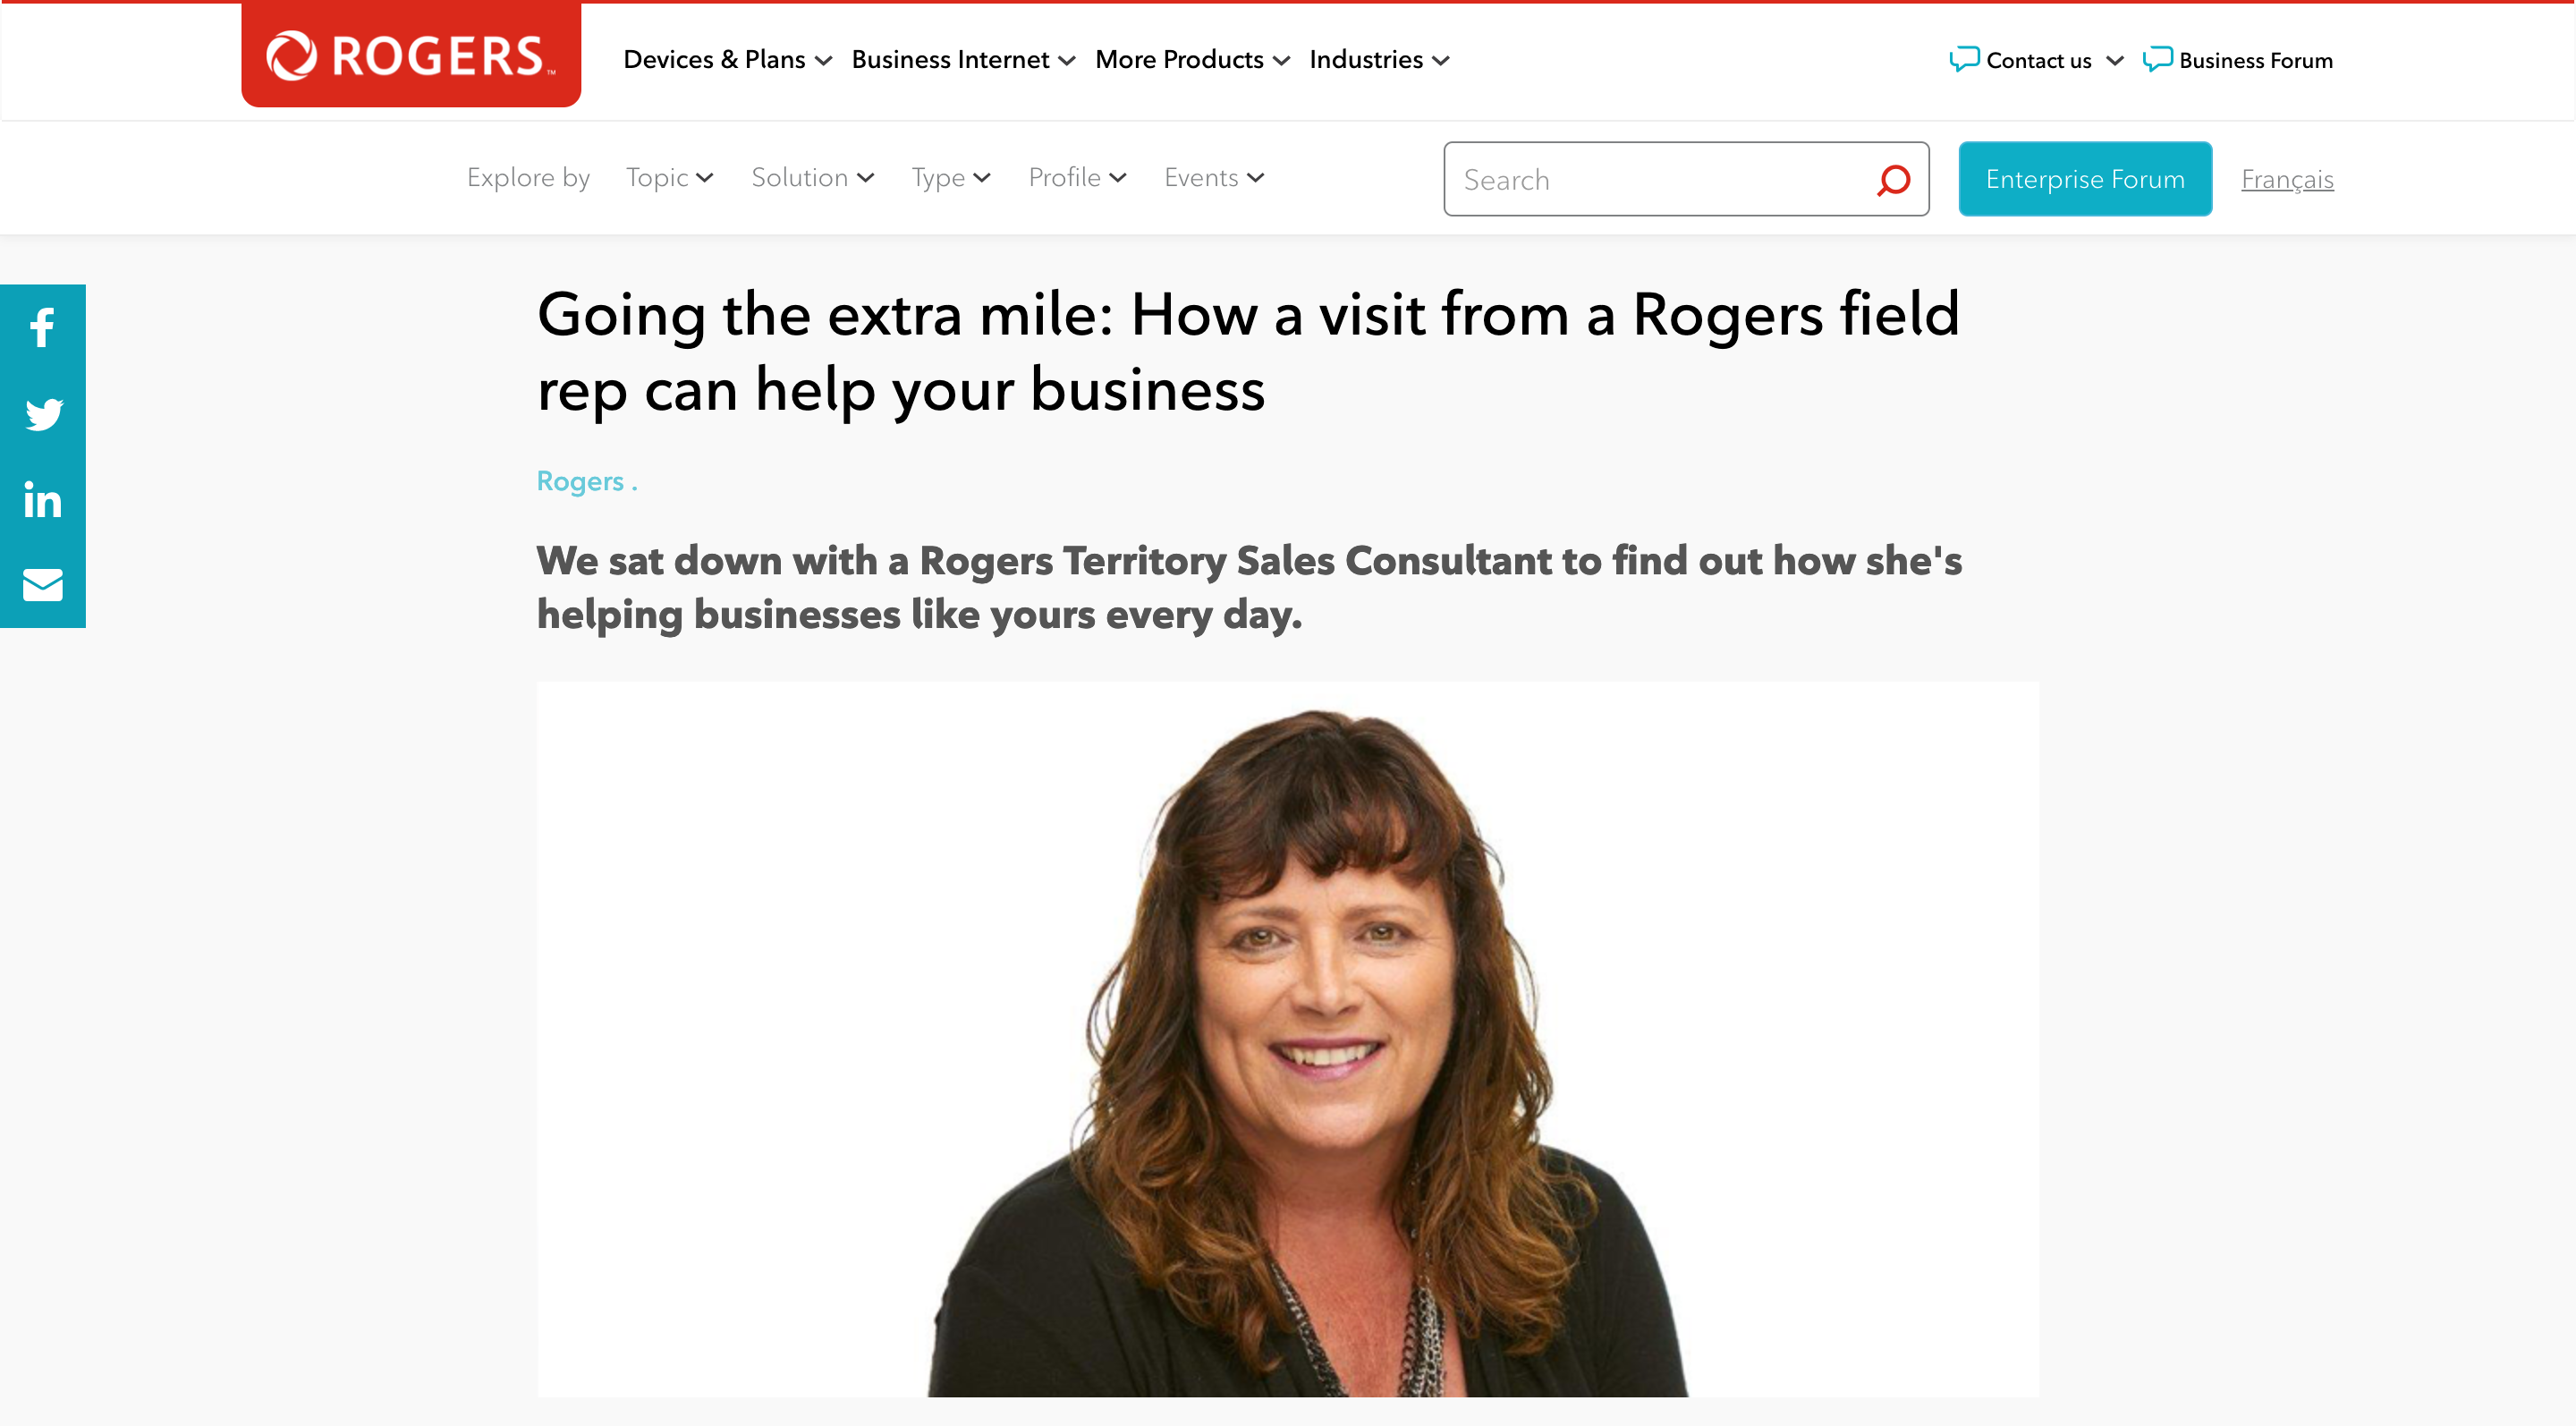 Rogers blogging strategy